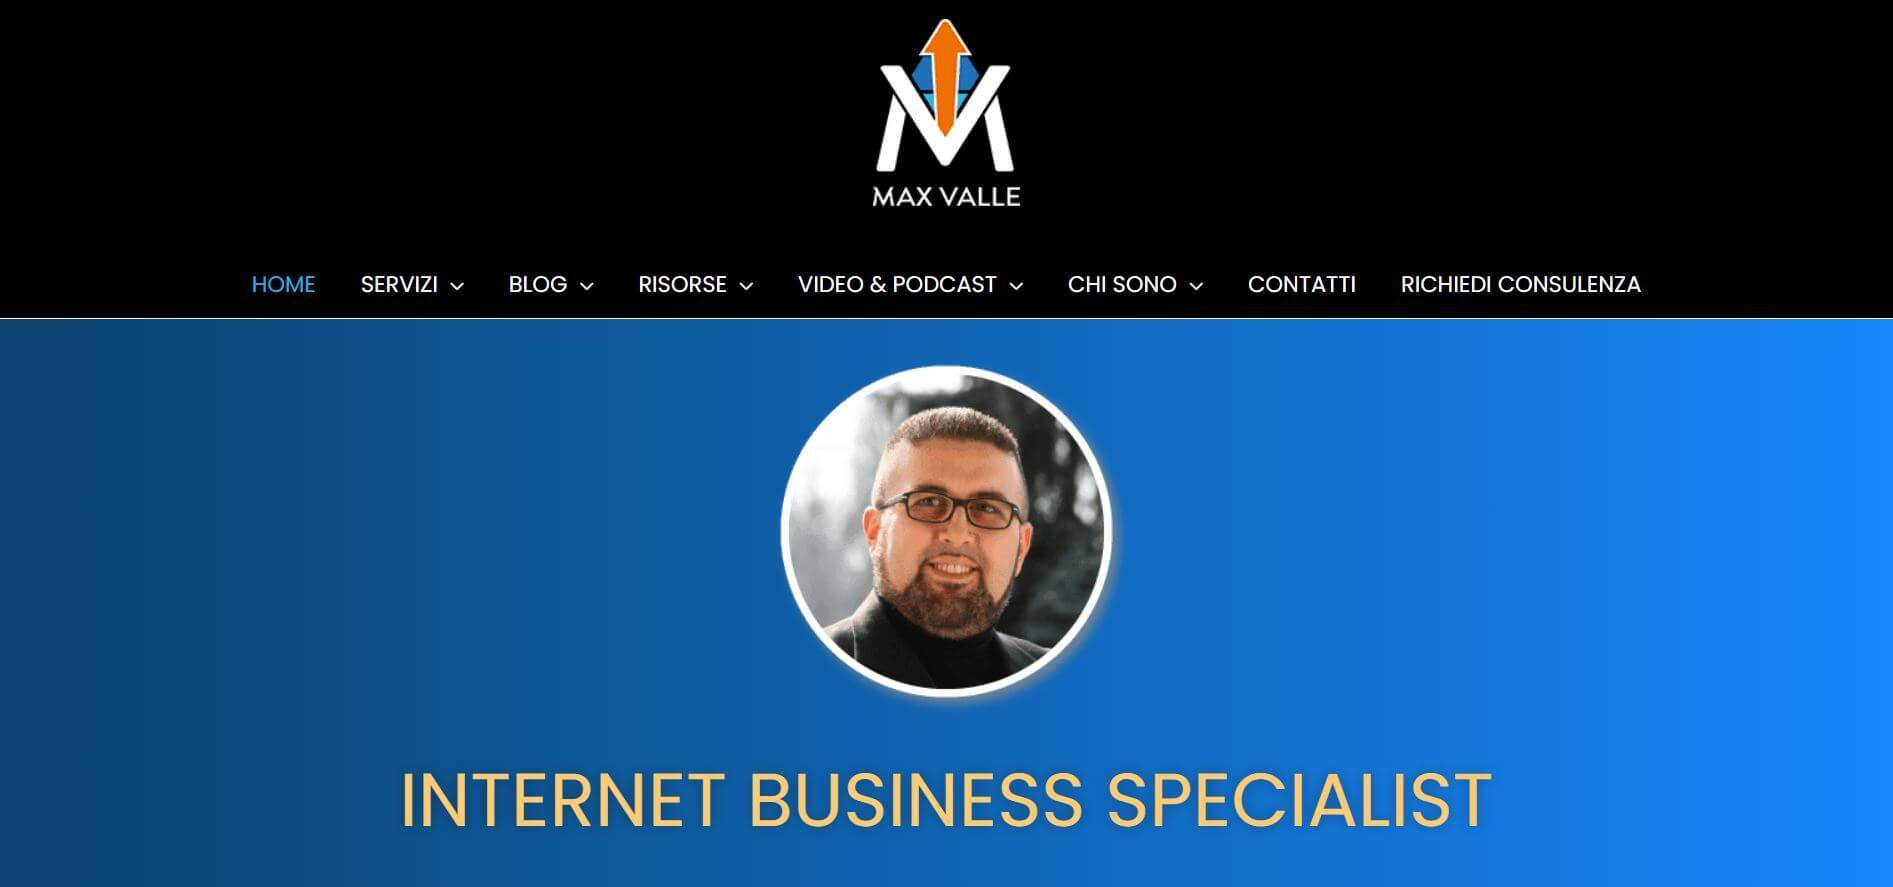 Max Valle internet business specialist Da SEO a SEO This Marketers Life